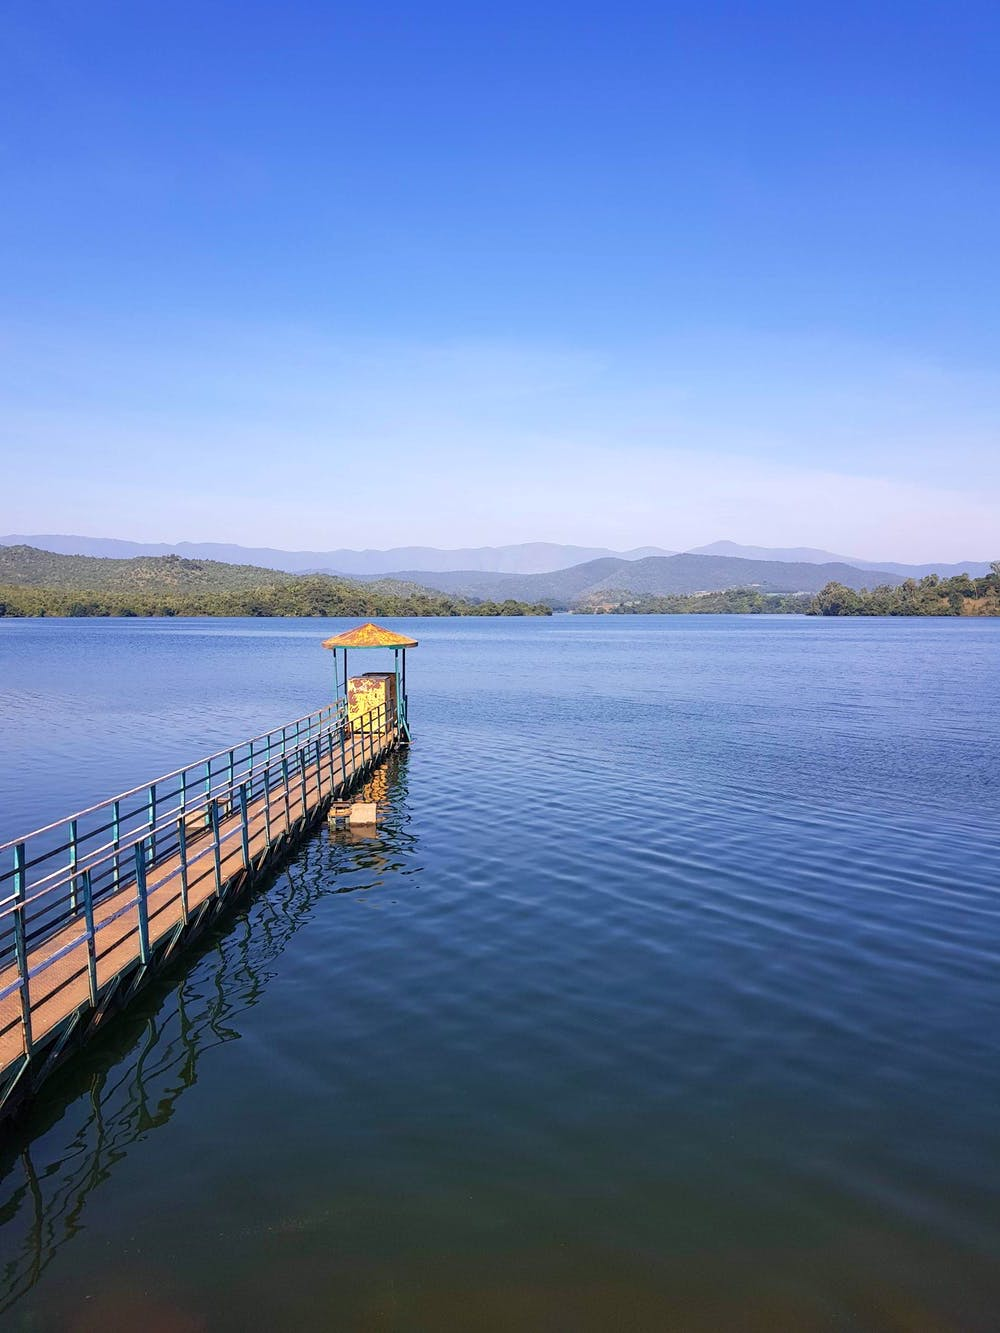 Body of water,Water resources,Water,Sky,Reservoir,Lake,Pier,Blue,River,Horizon